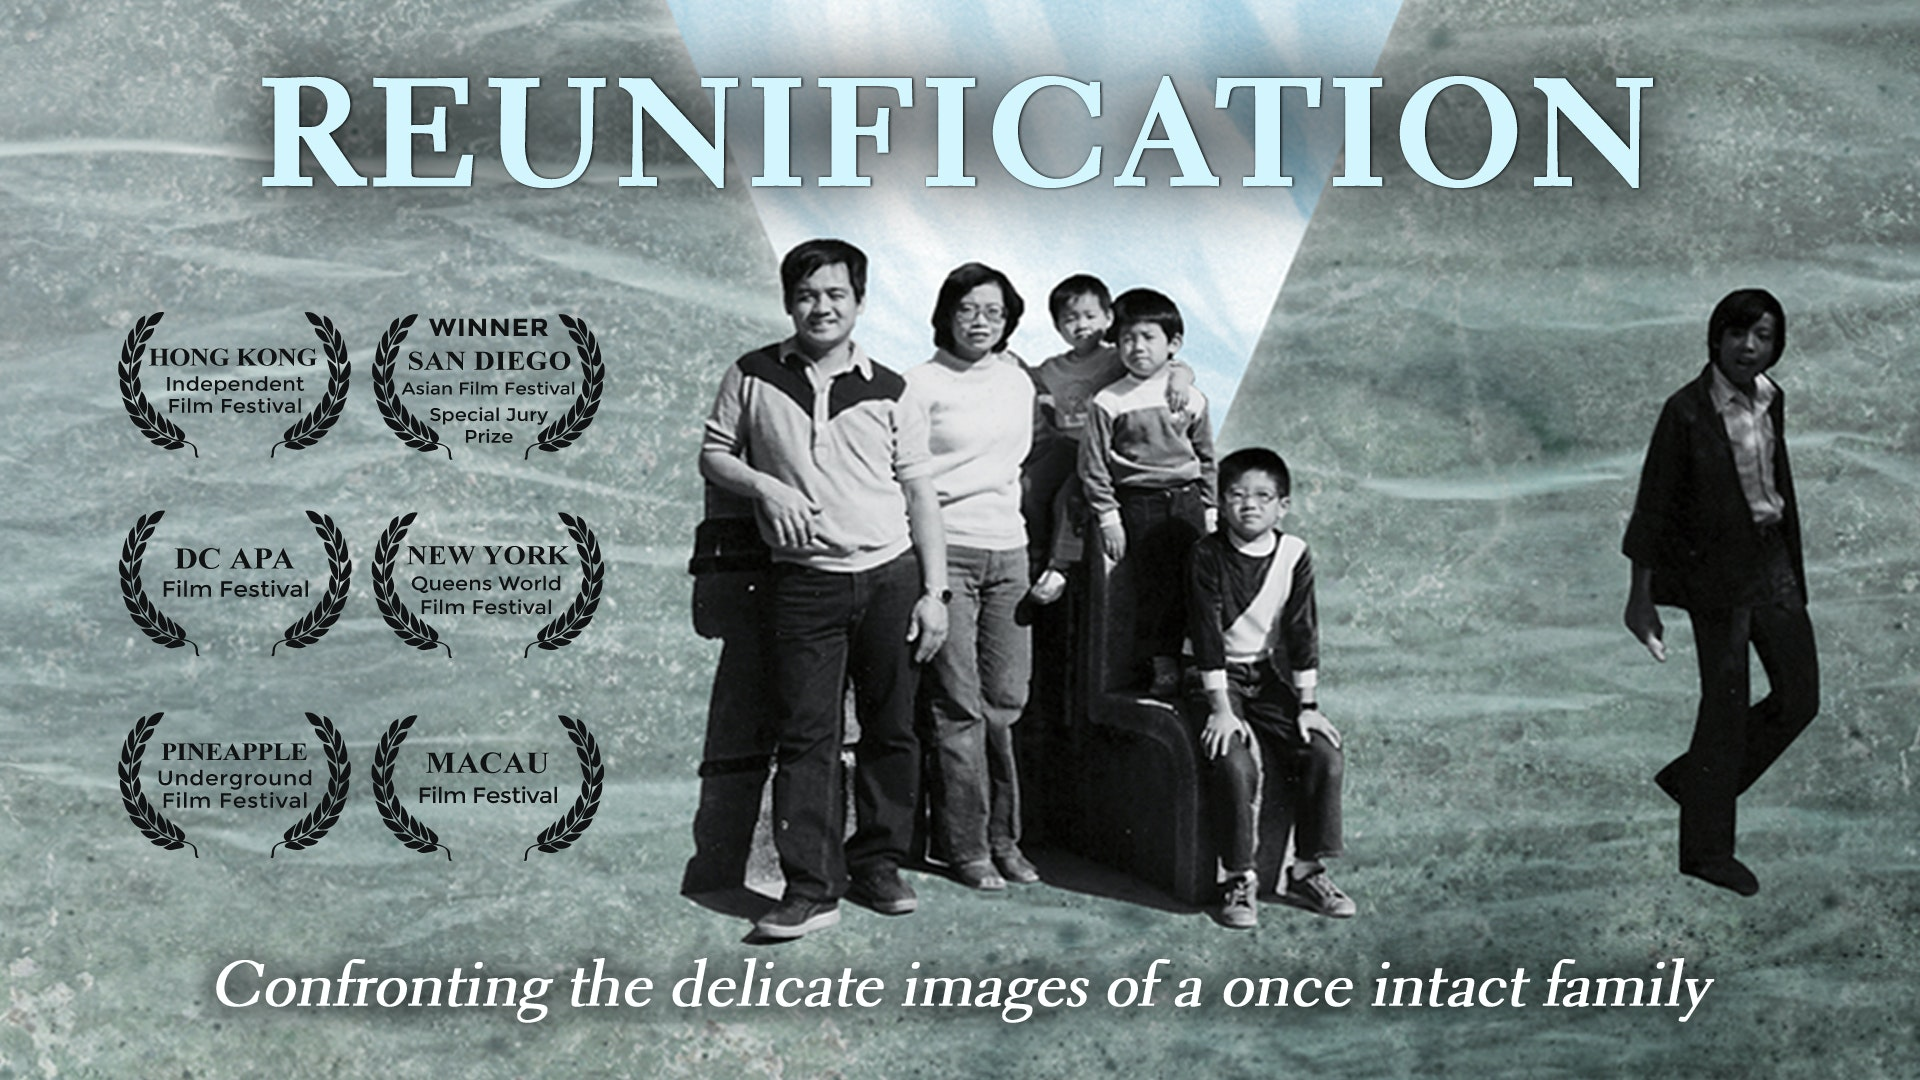 REUNIFICATION w/ Bonus Material